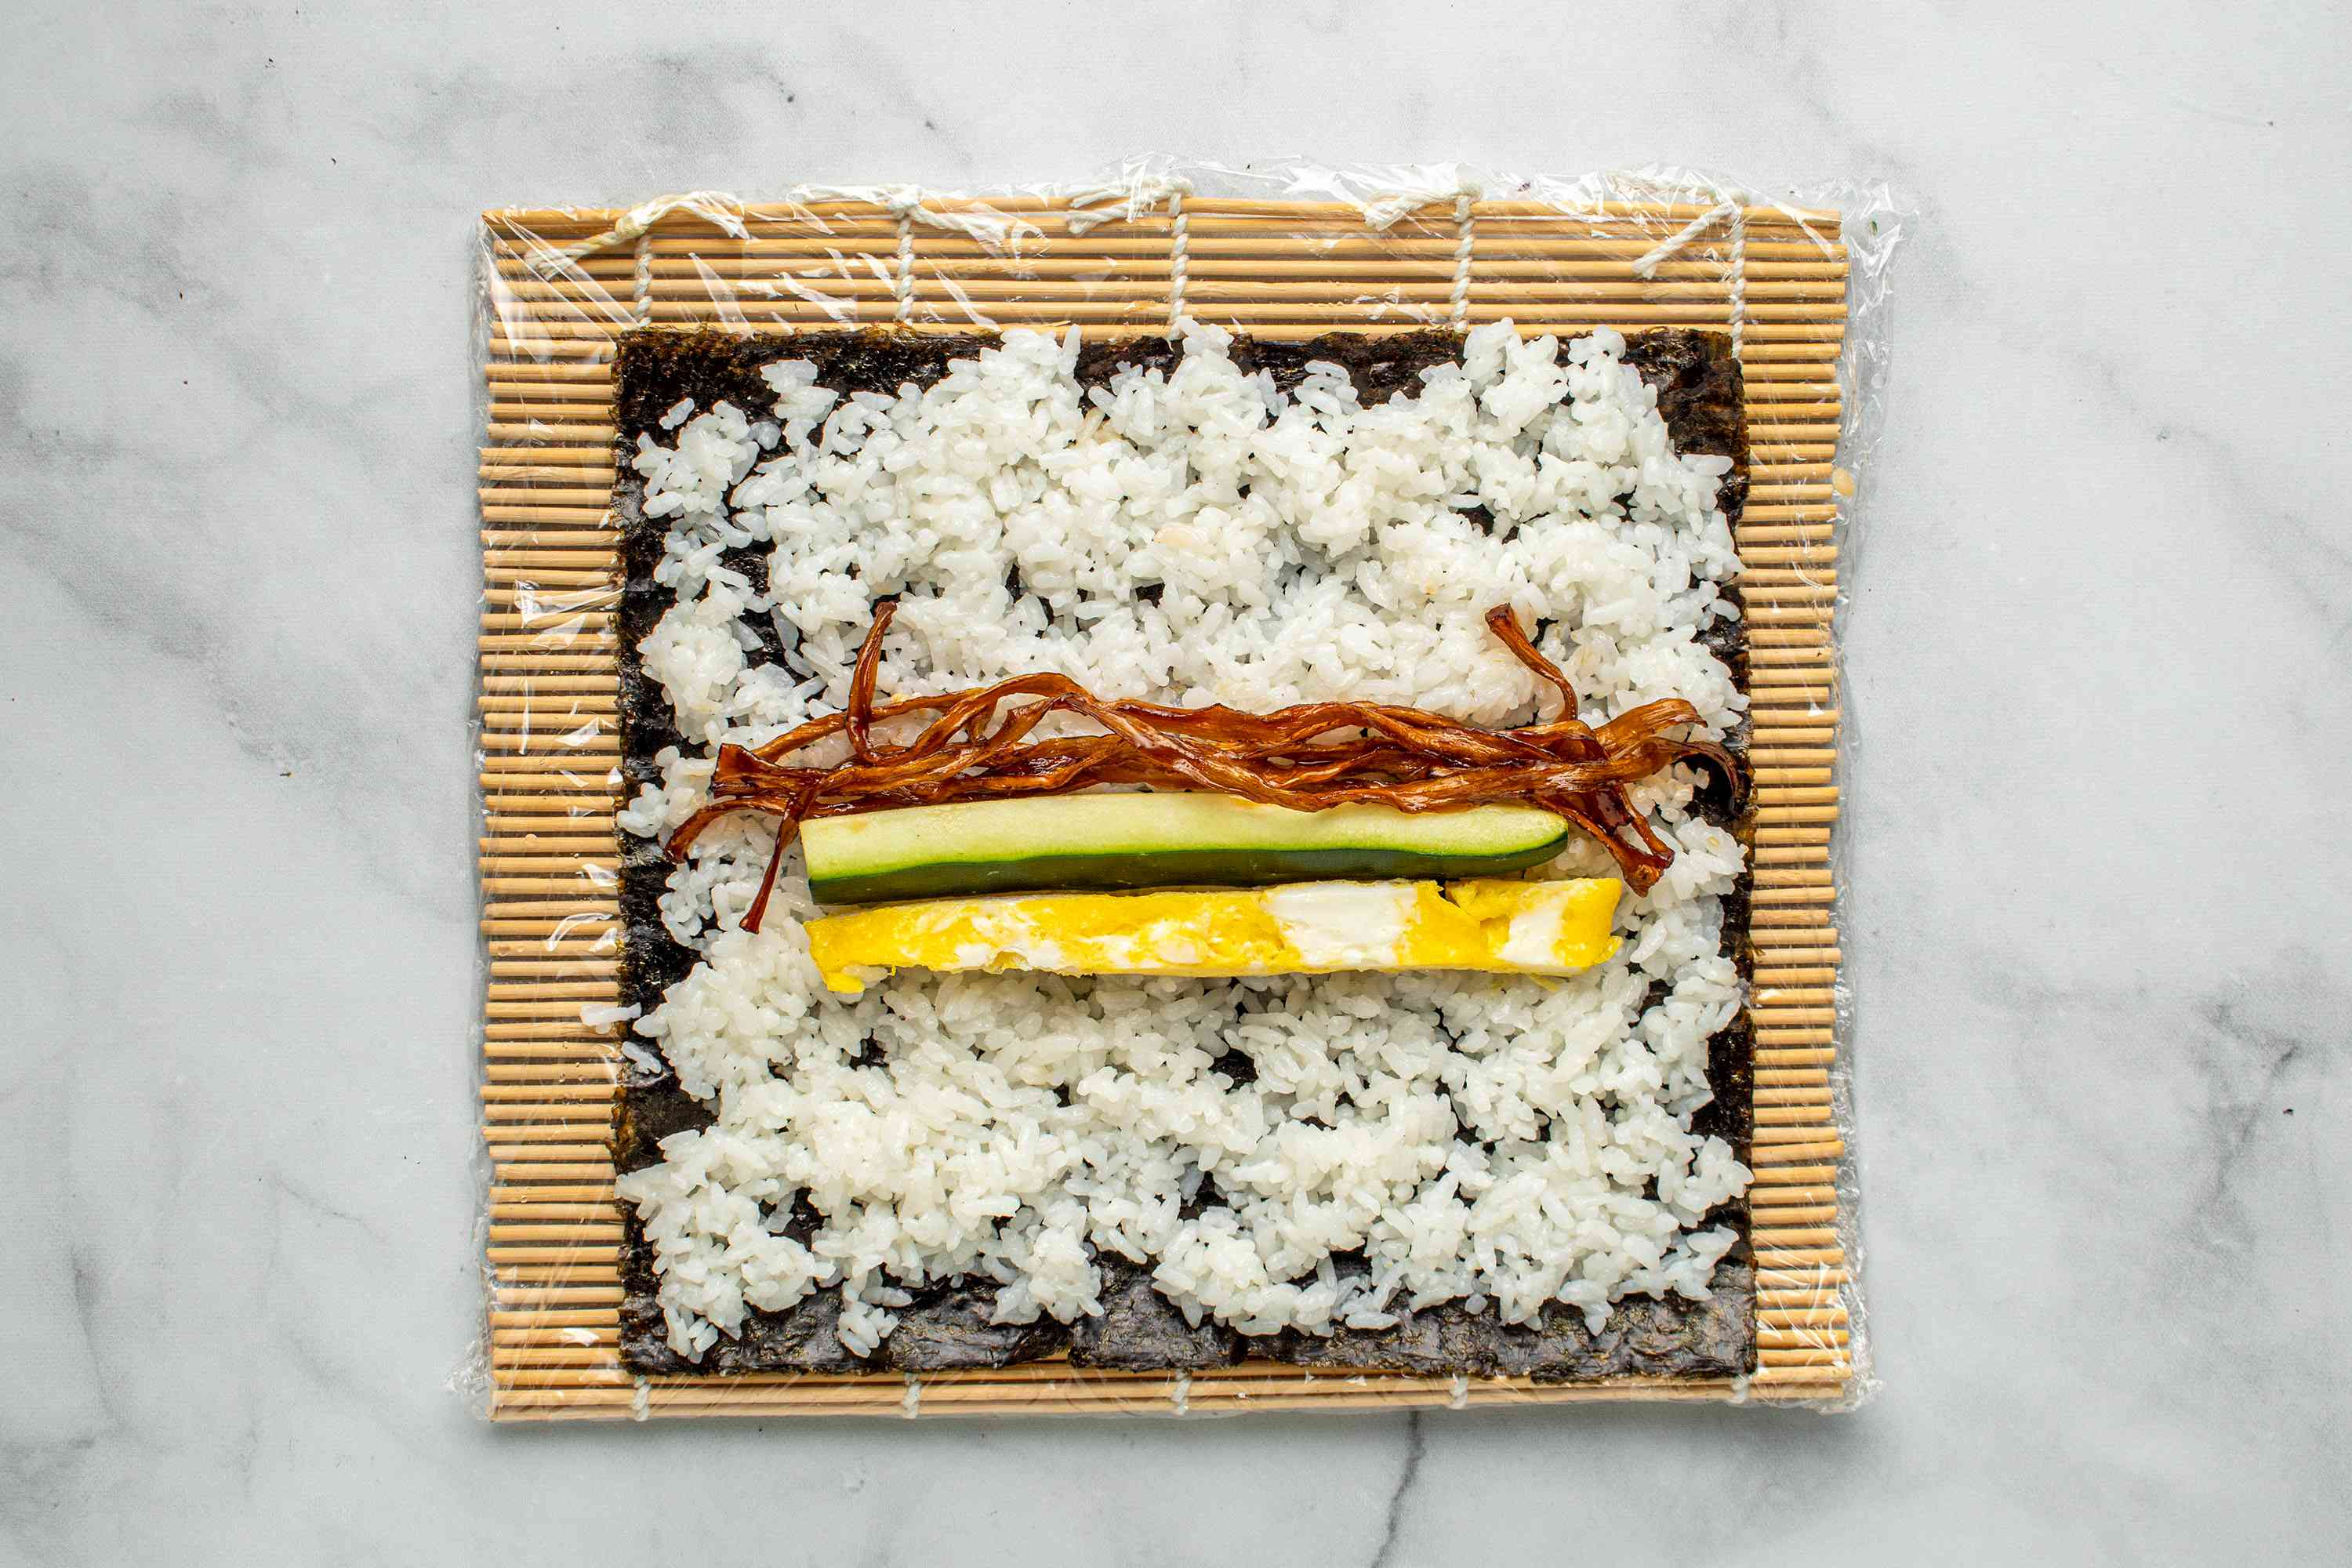 Place kanpyo, omelet, and cucumber sticks horizontally on rice in the center